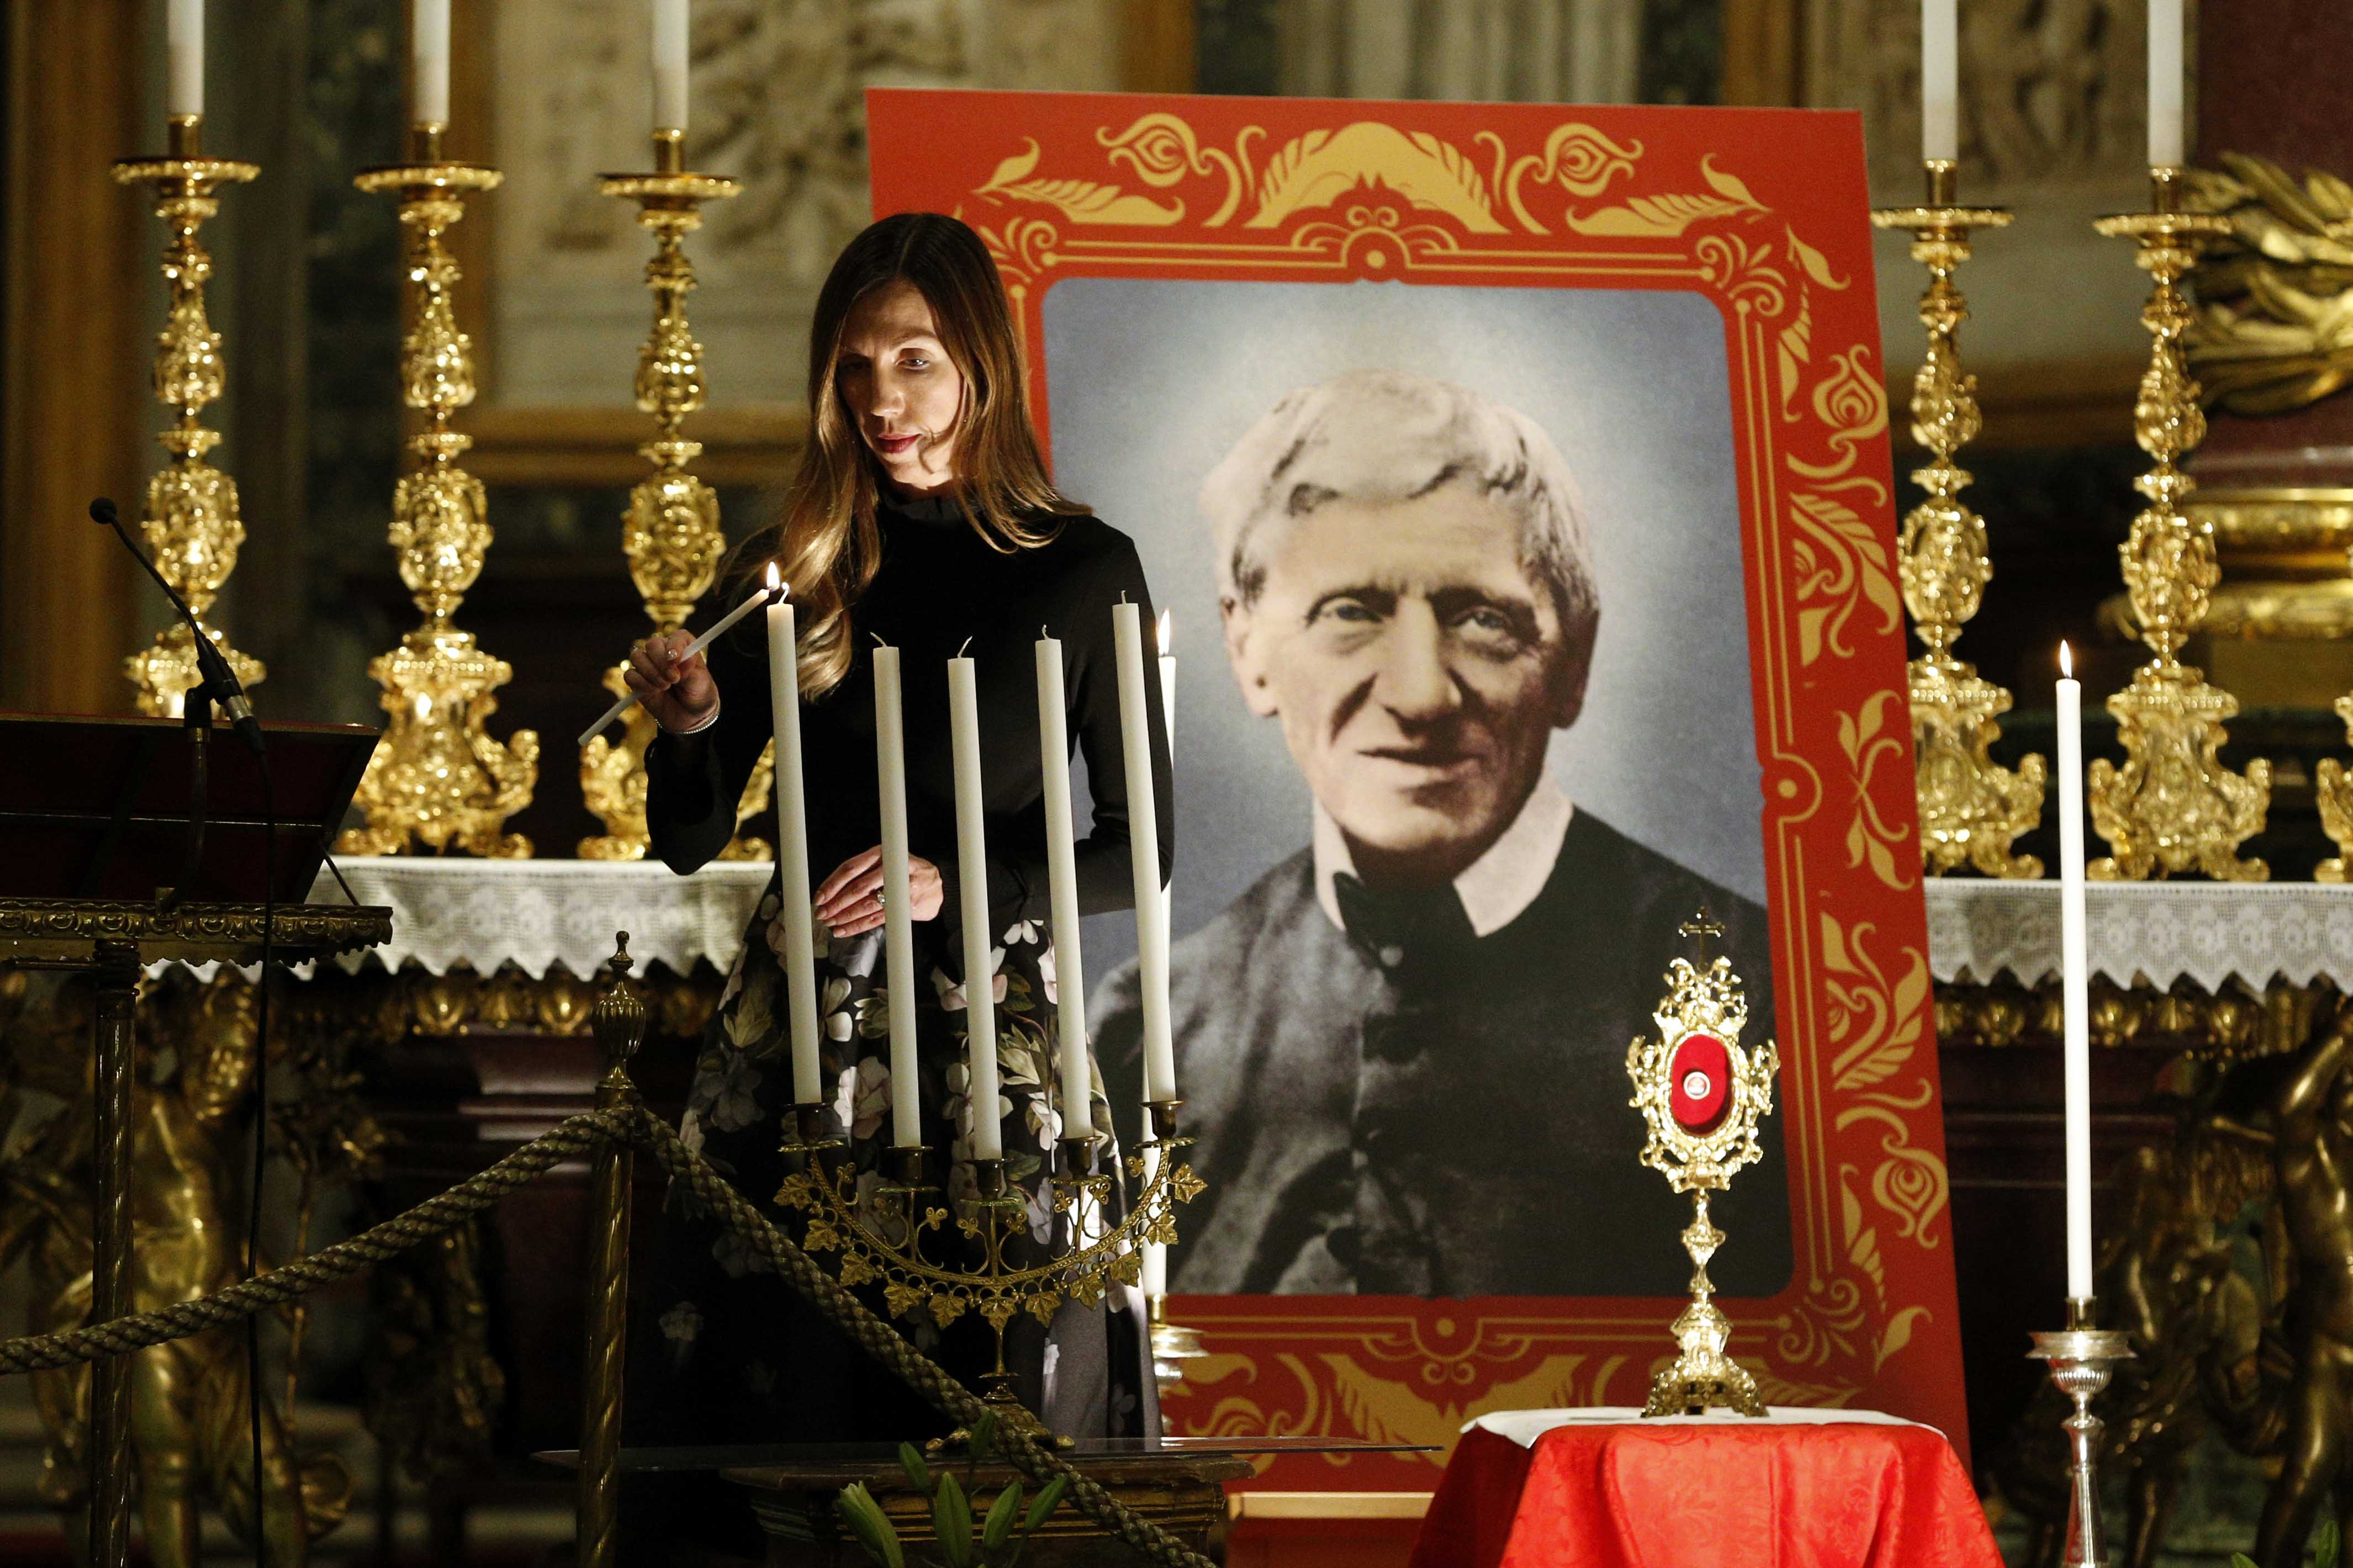 Melissa Villalobos of Chicago lights a candle during a vigil in advance of the canonisation of St John Henry Newman, at the Basilica of St Mary Major in Rome on 12 October 2019. Villalobos' healing through the intercession of St John Henry Newman was accepted as the miracle needed for the British cardinal's canonisation. Photo: Paul Haring/CNS.